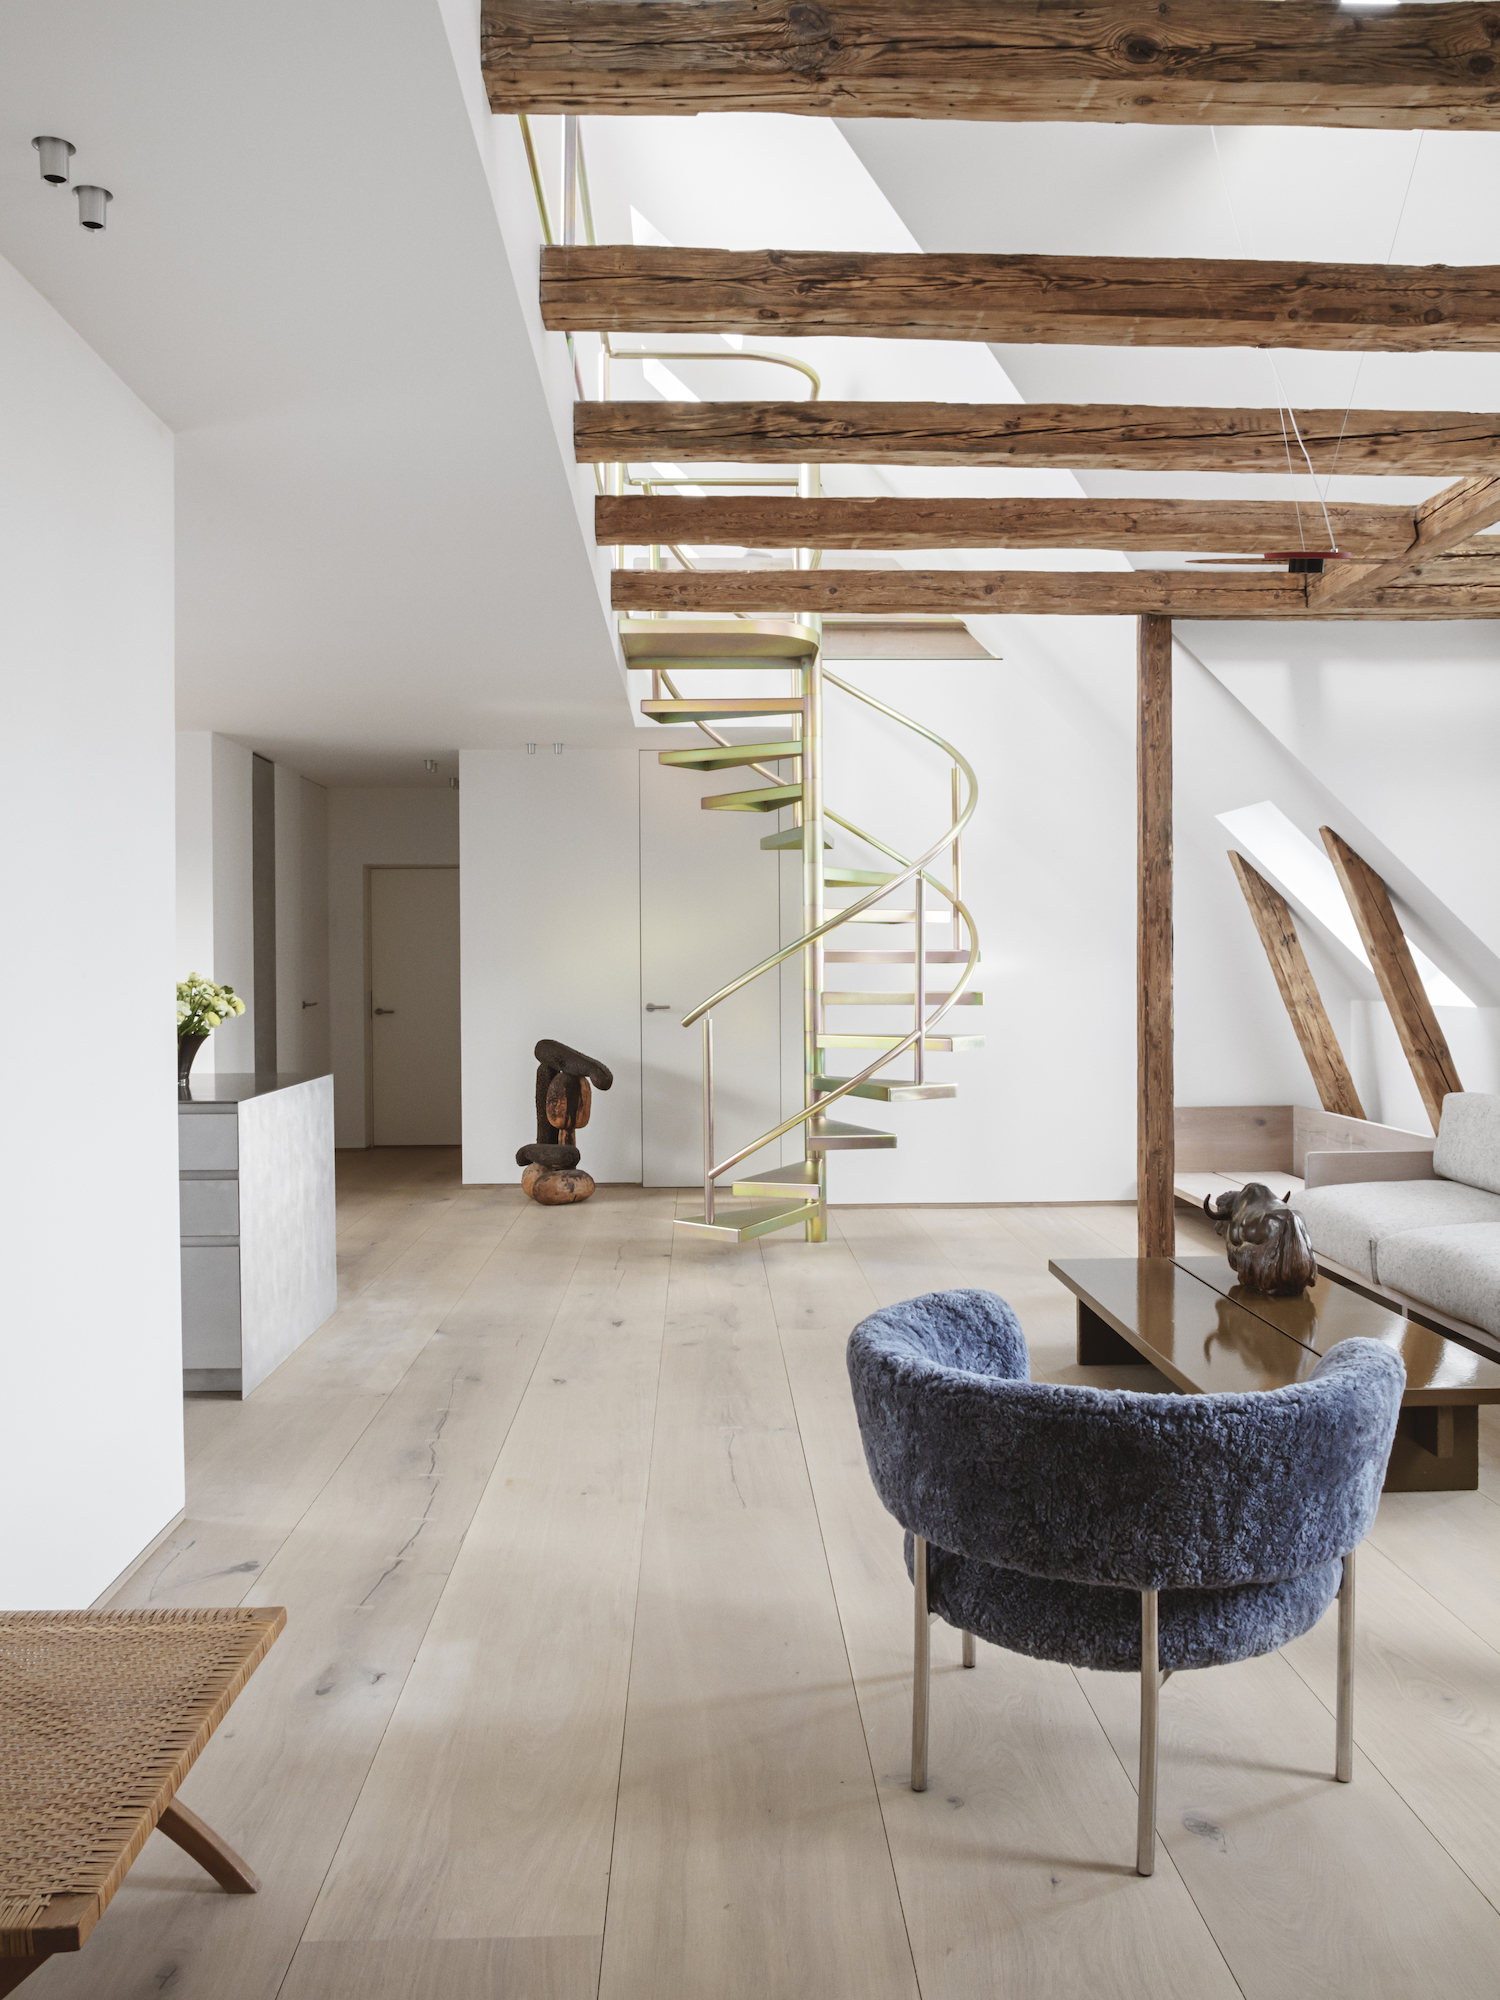 est living studio david thulstrup attic house 4